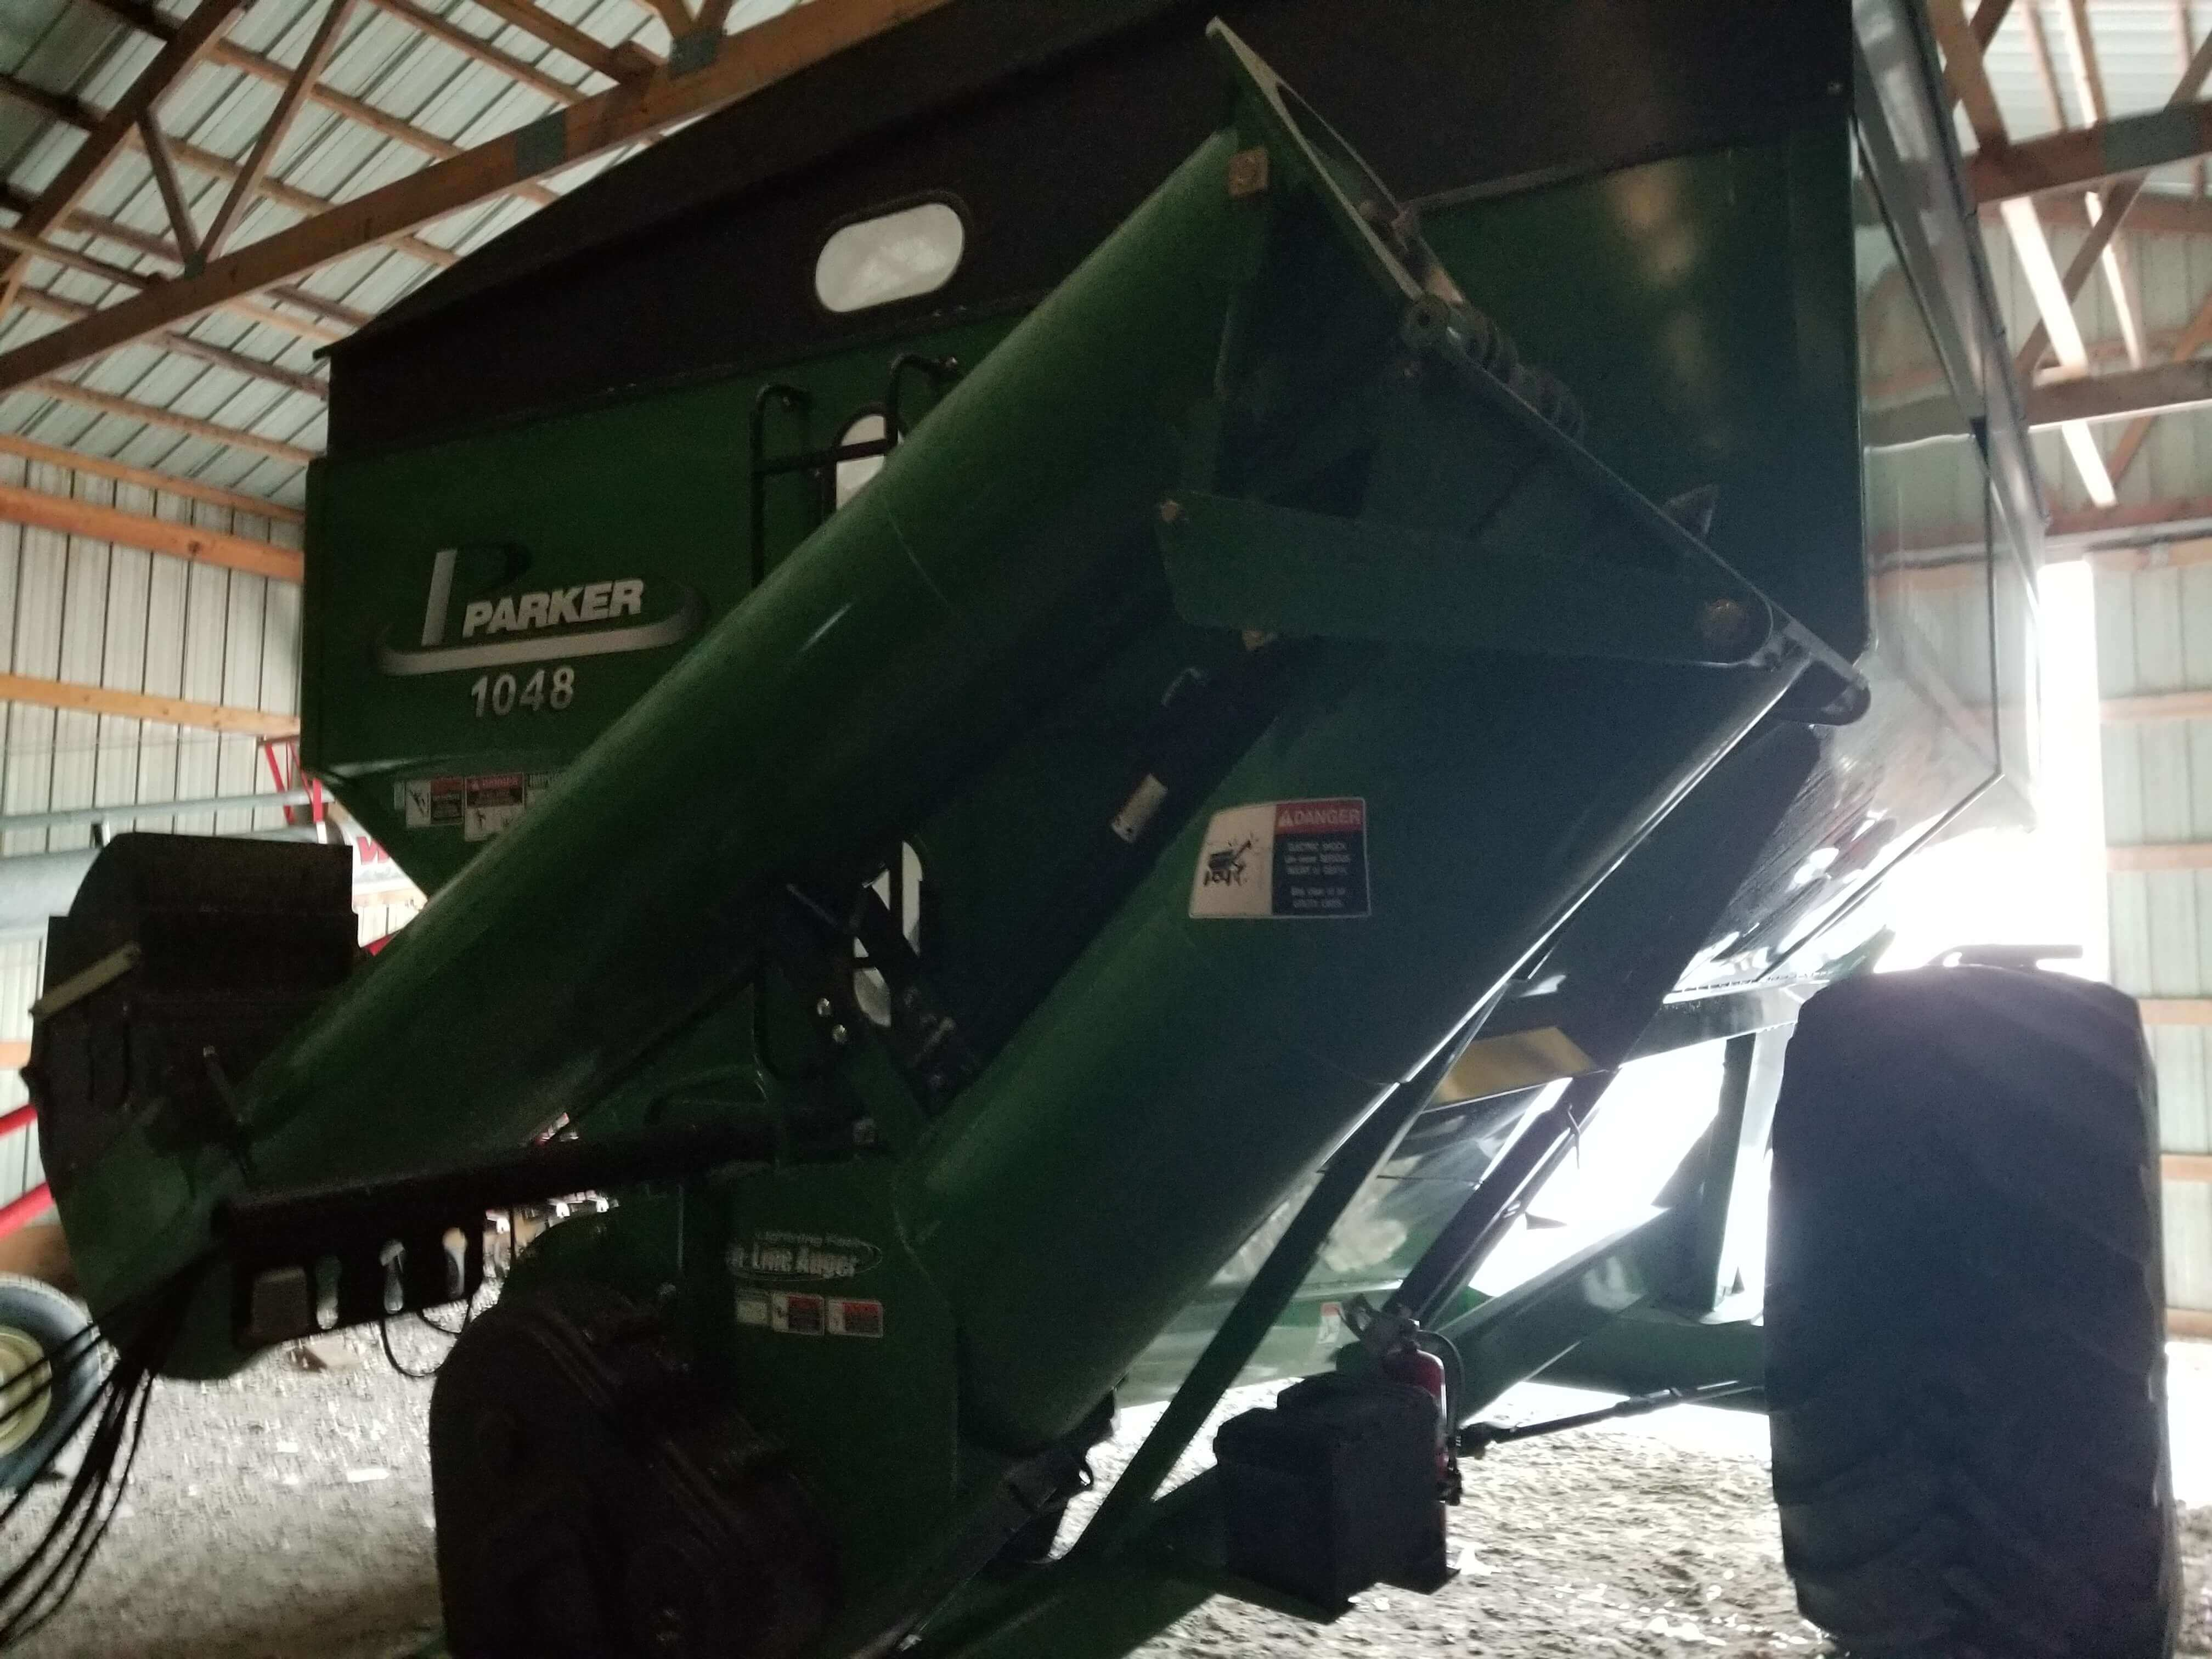 Photo Gallery Images for Parker 1048 GRAIN CART